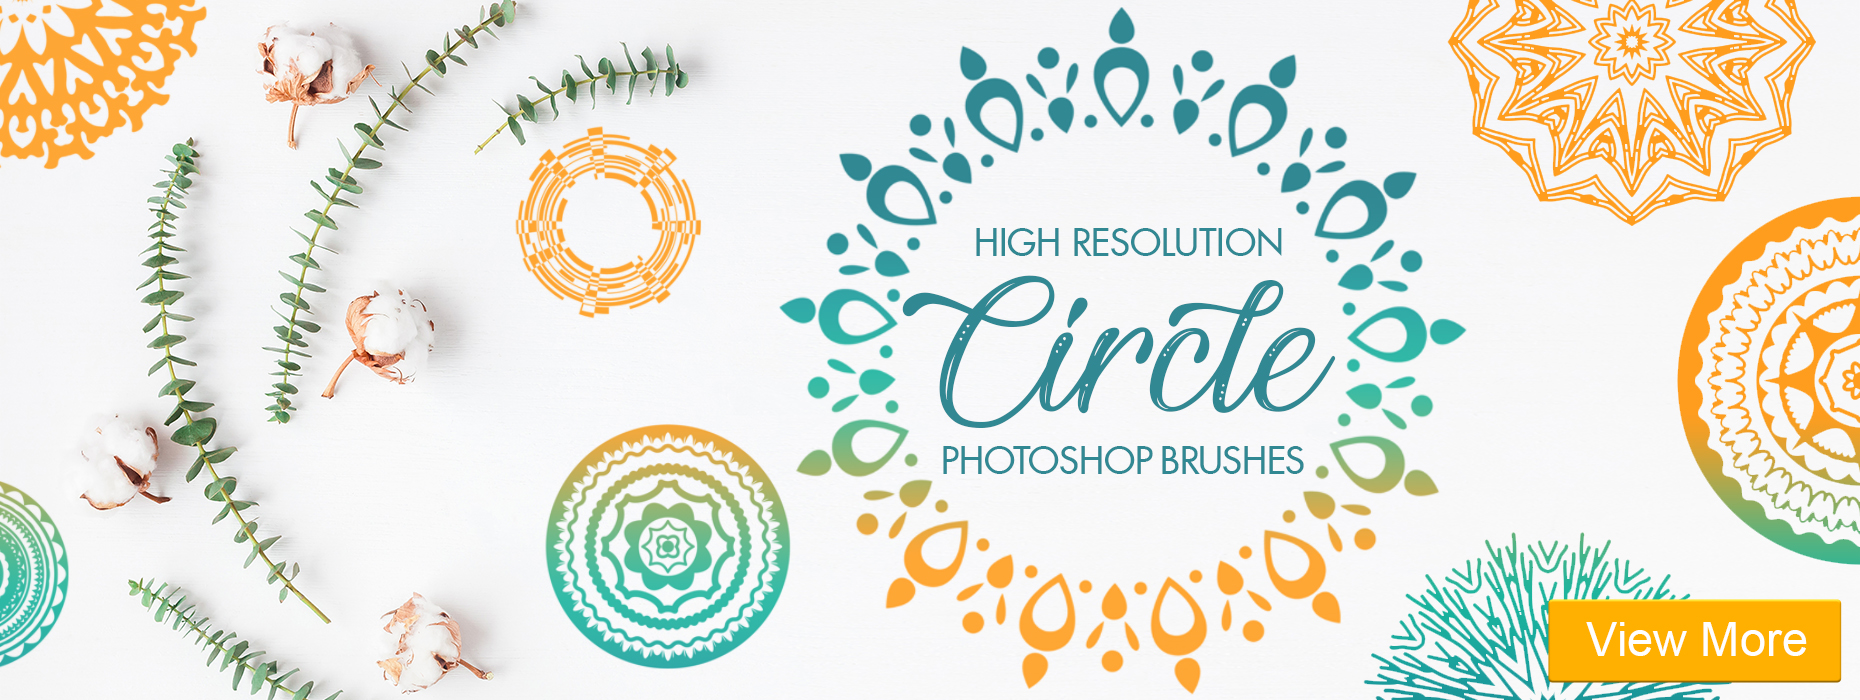 free photoshop circle brushes high resolution photoshop circle brushes banner